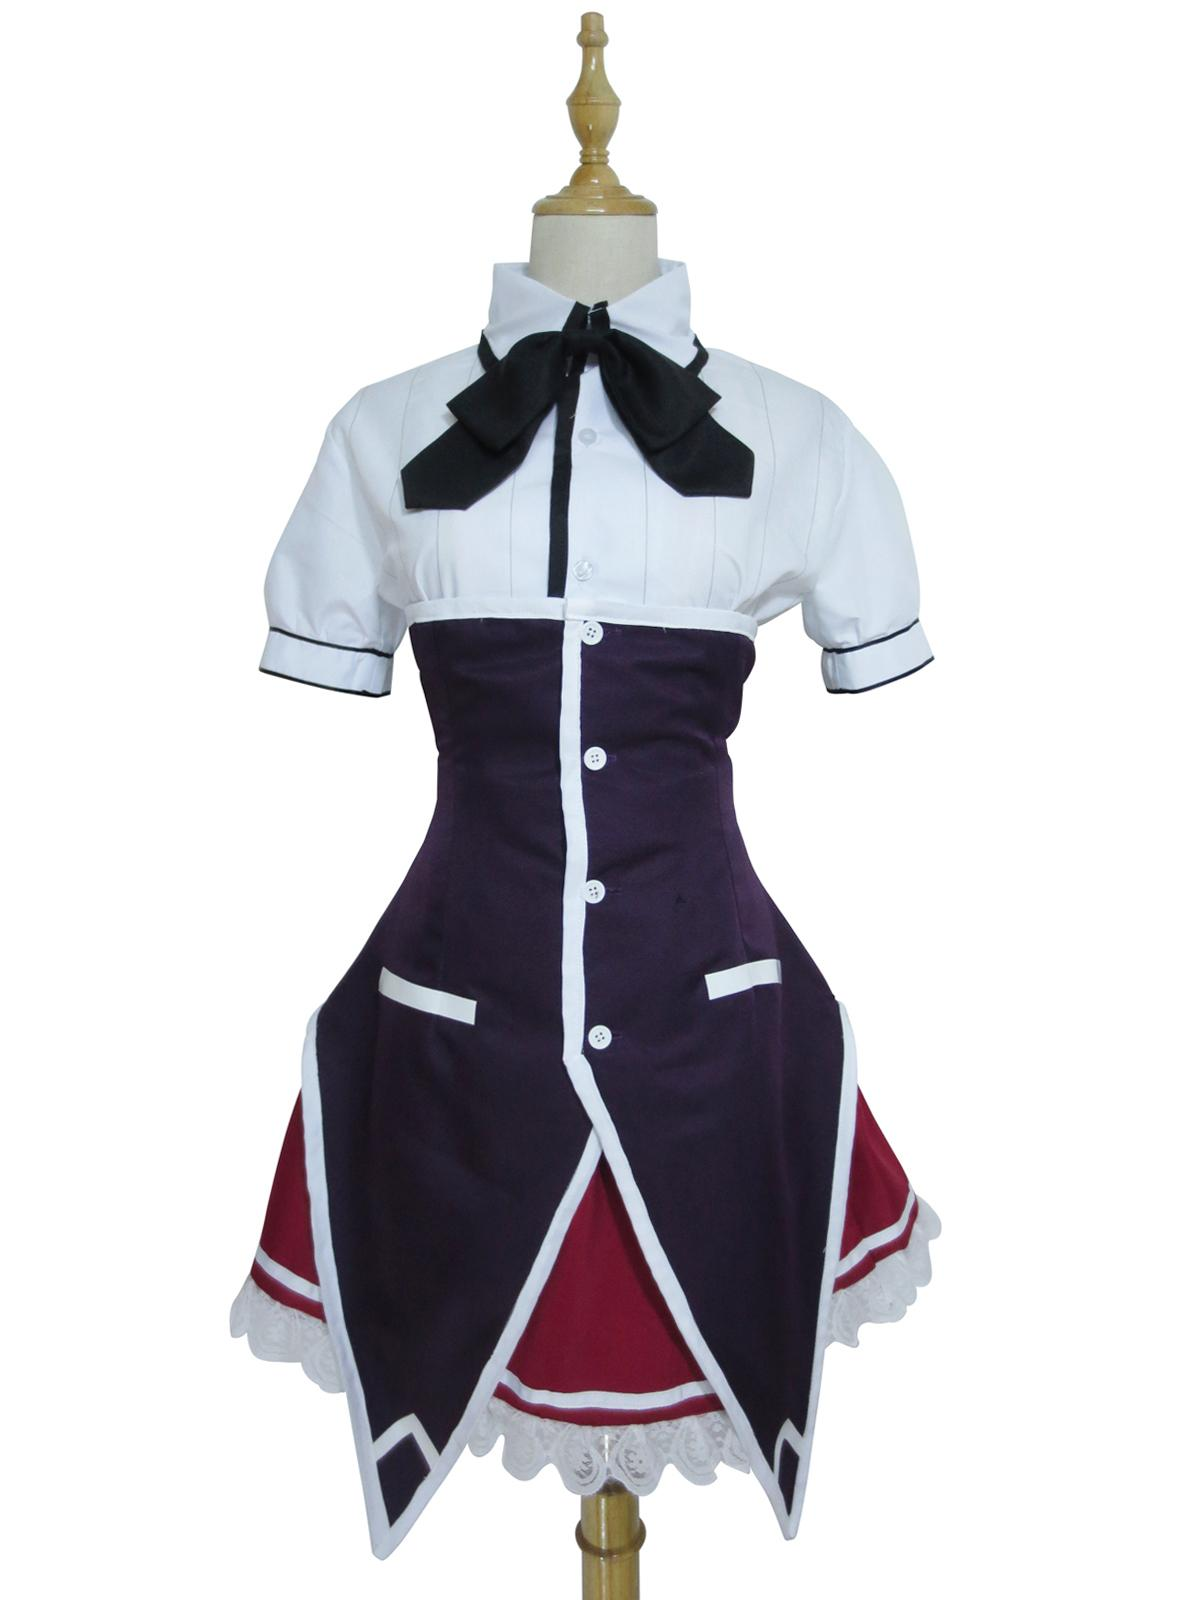 High School Dxd Rias Gremory Dress Suit Cosplay Costume Halloween